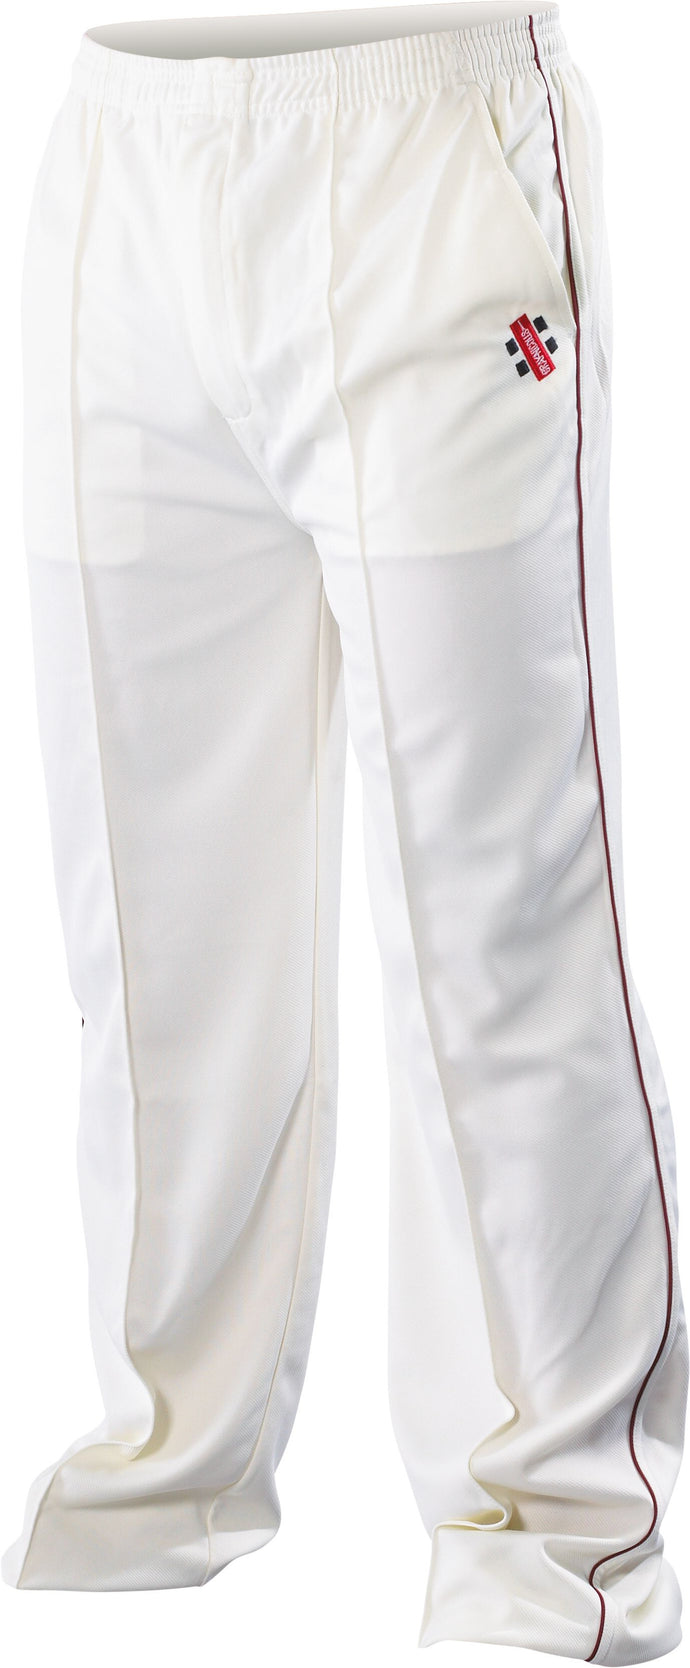 GRAY NICOLLS PANT SUPER Ivory With Trim